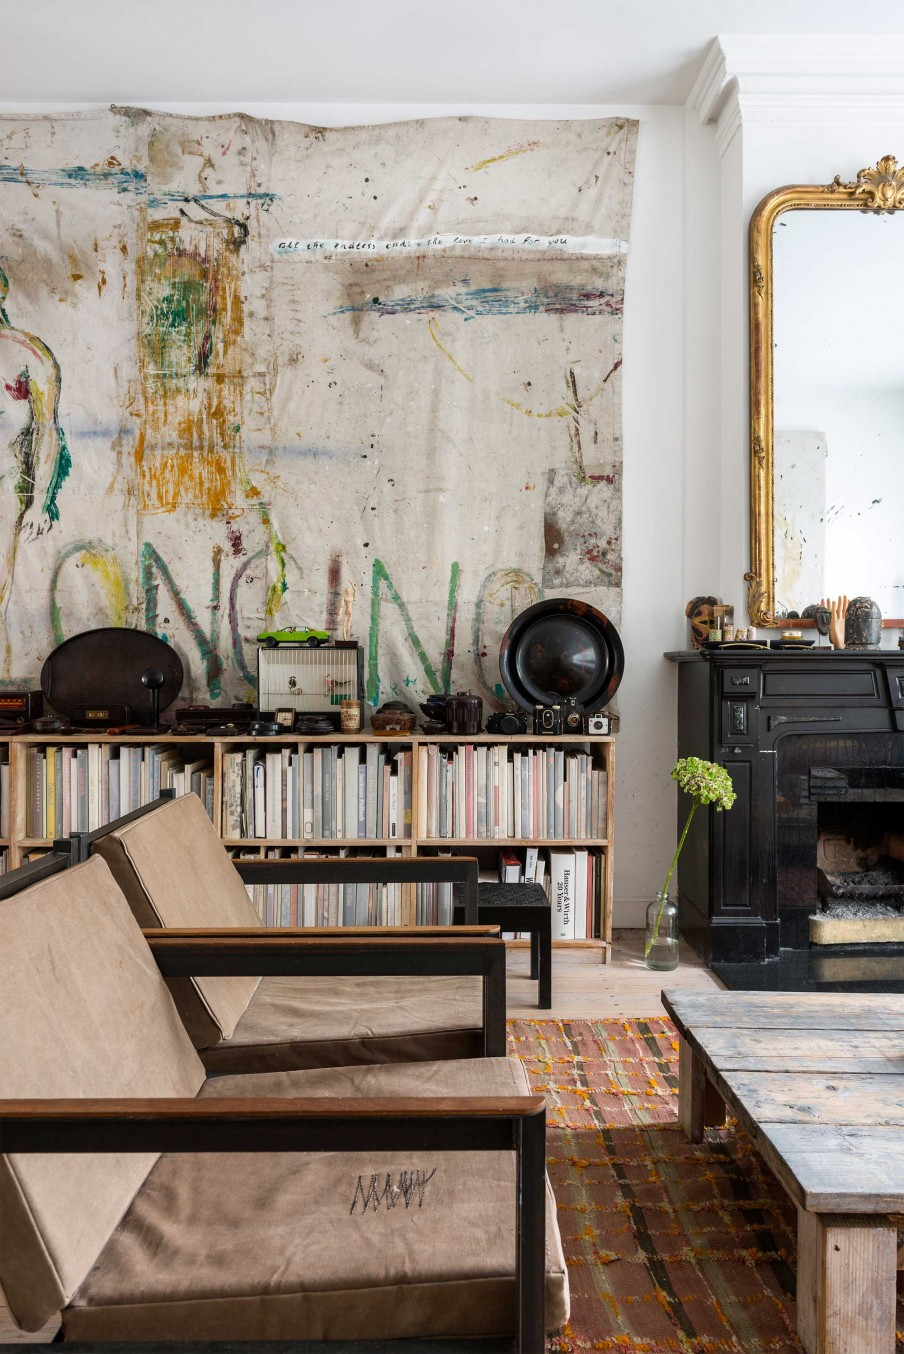 This eclectic home belongs to an artist, and it features a lot of his works and industrial details